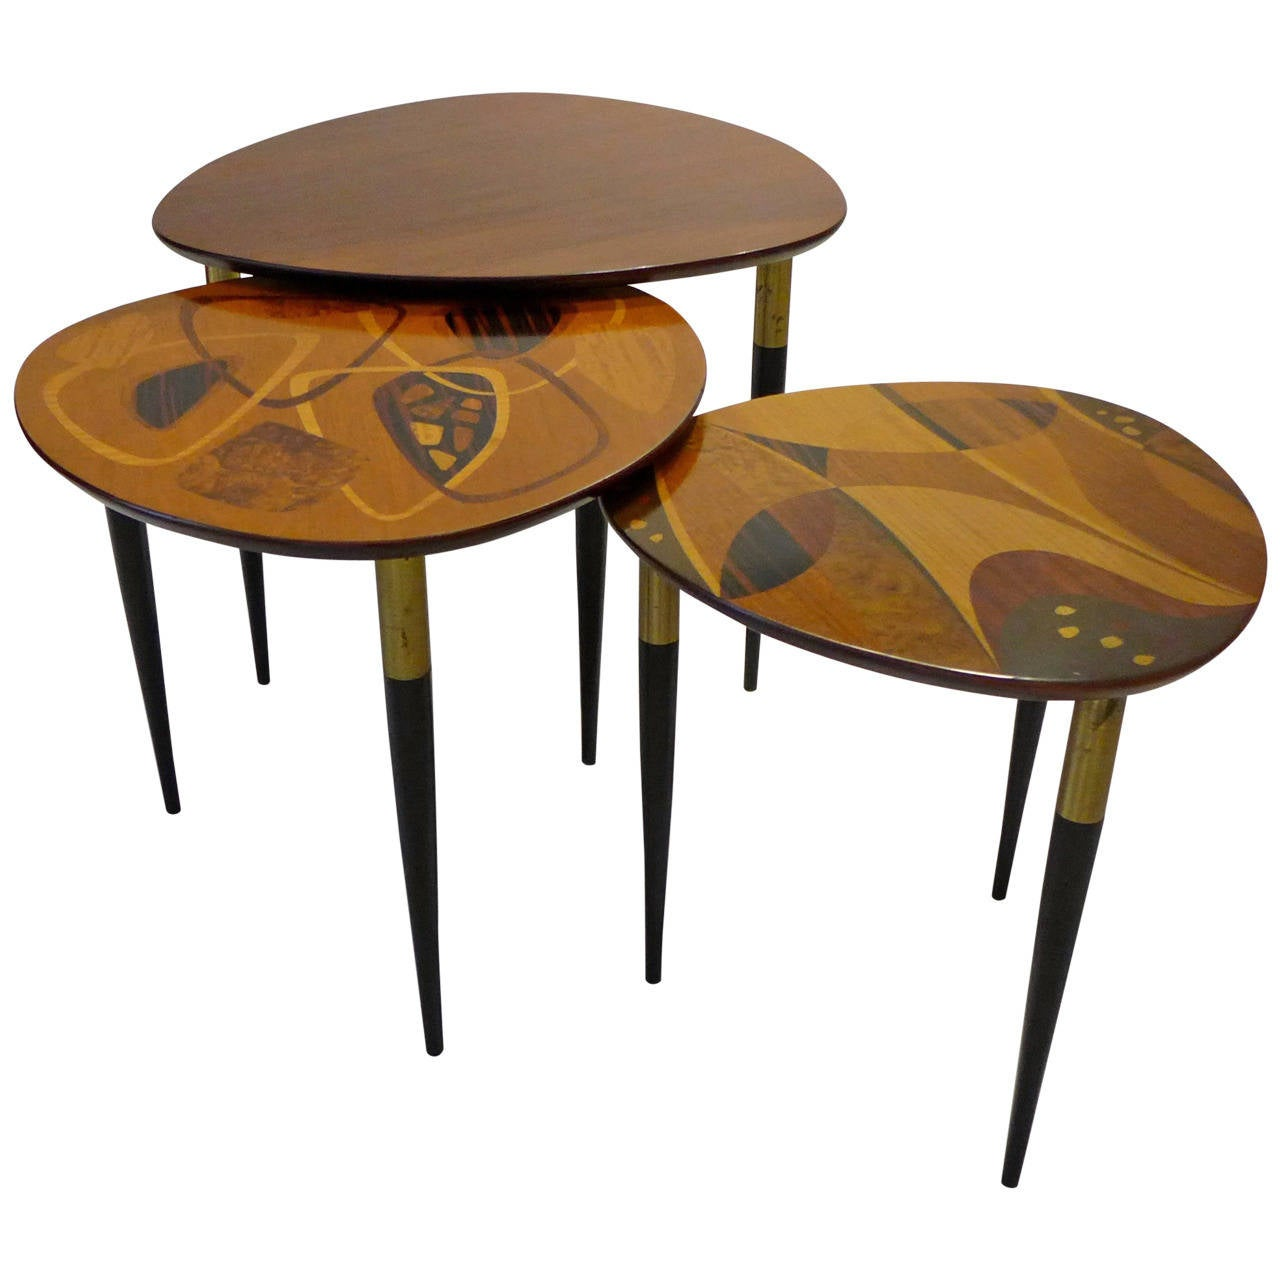 Erno fabry nest of tables with exotic wood inlay at 1stdibs erno fabry nest of tables with exotic wood inlay 1 geotapseo Image collections